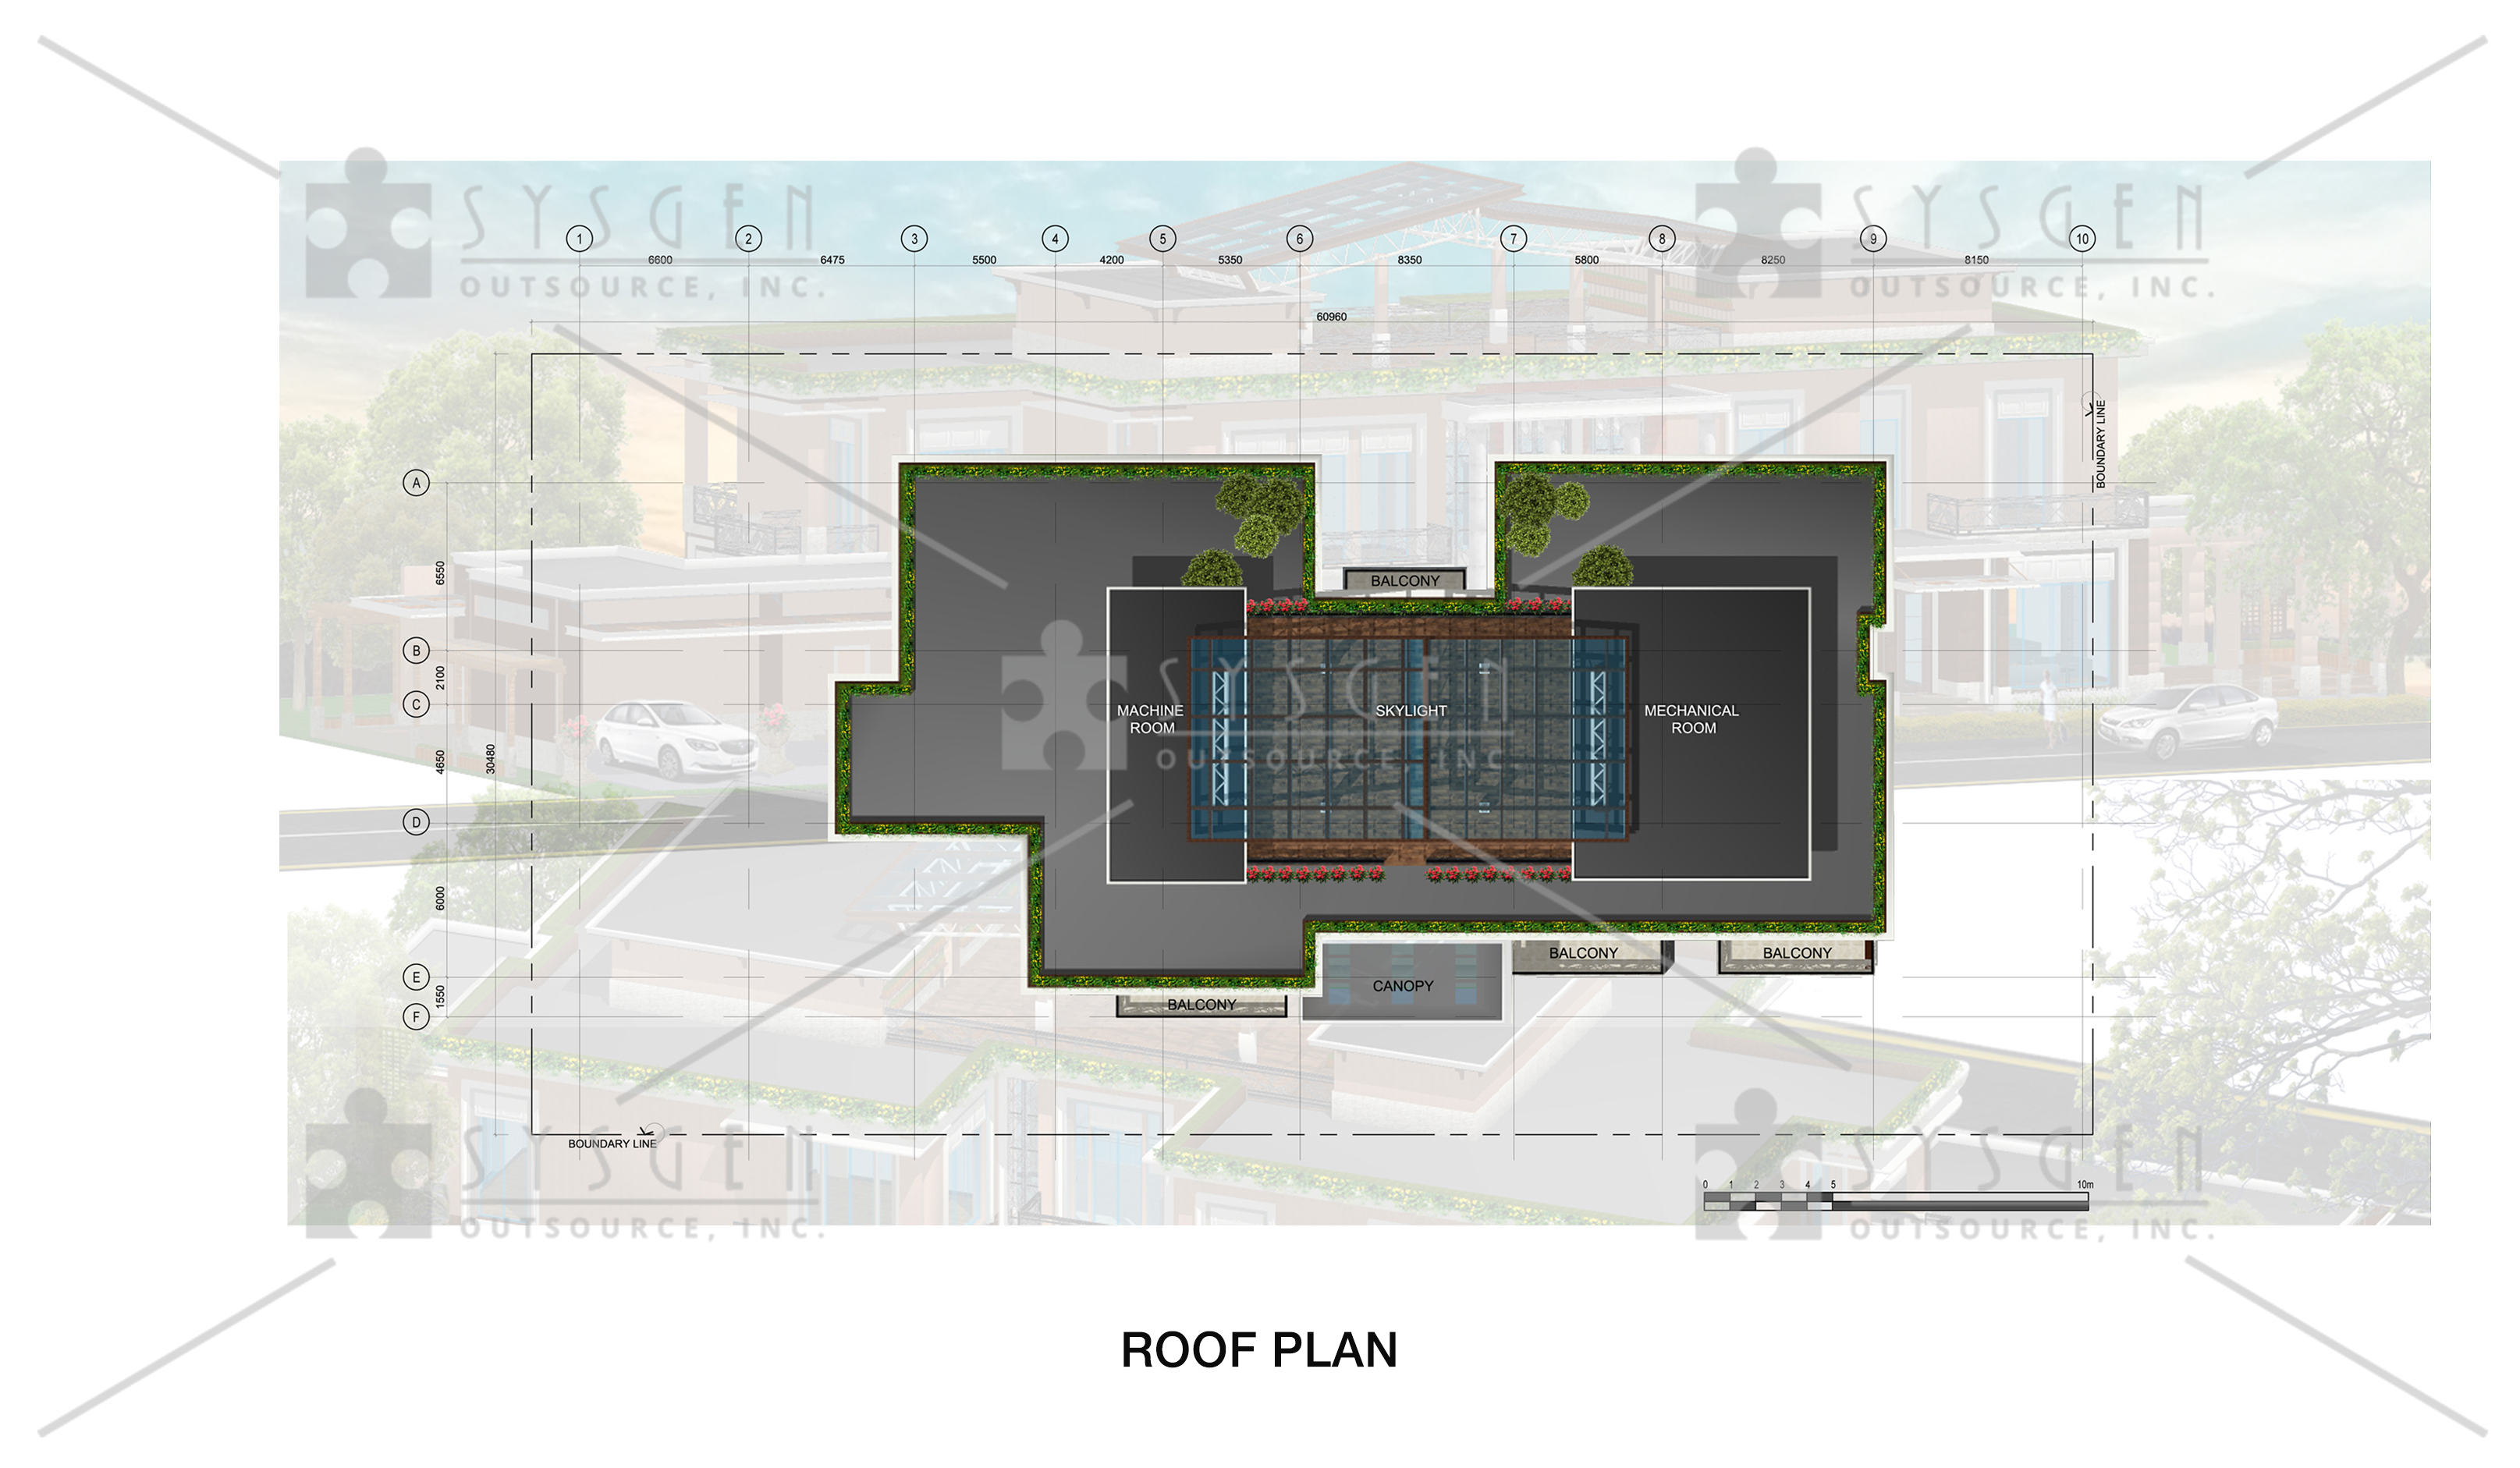 sysgen-outsource-cad-outsourcing-services-sketch-up-residential_villa-katnis7